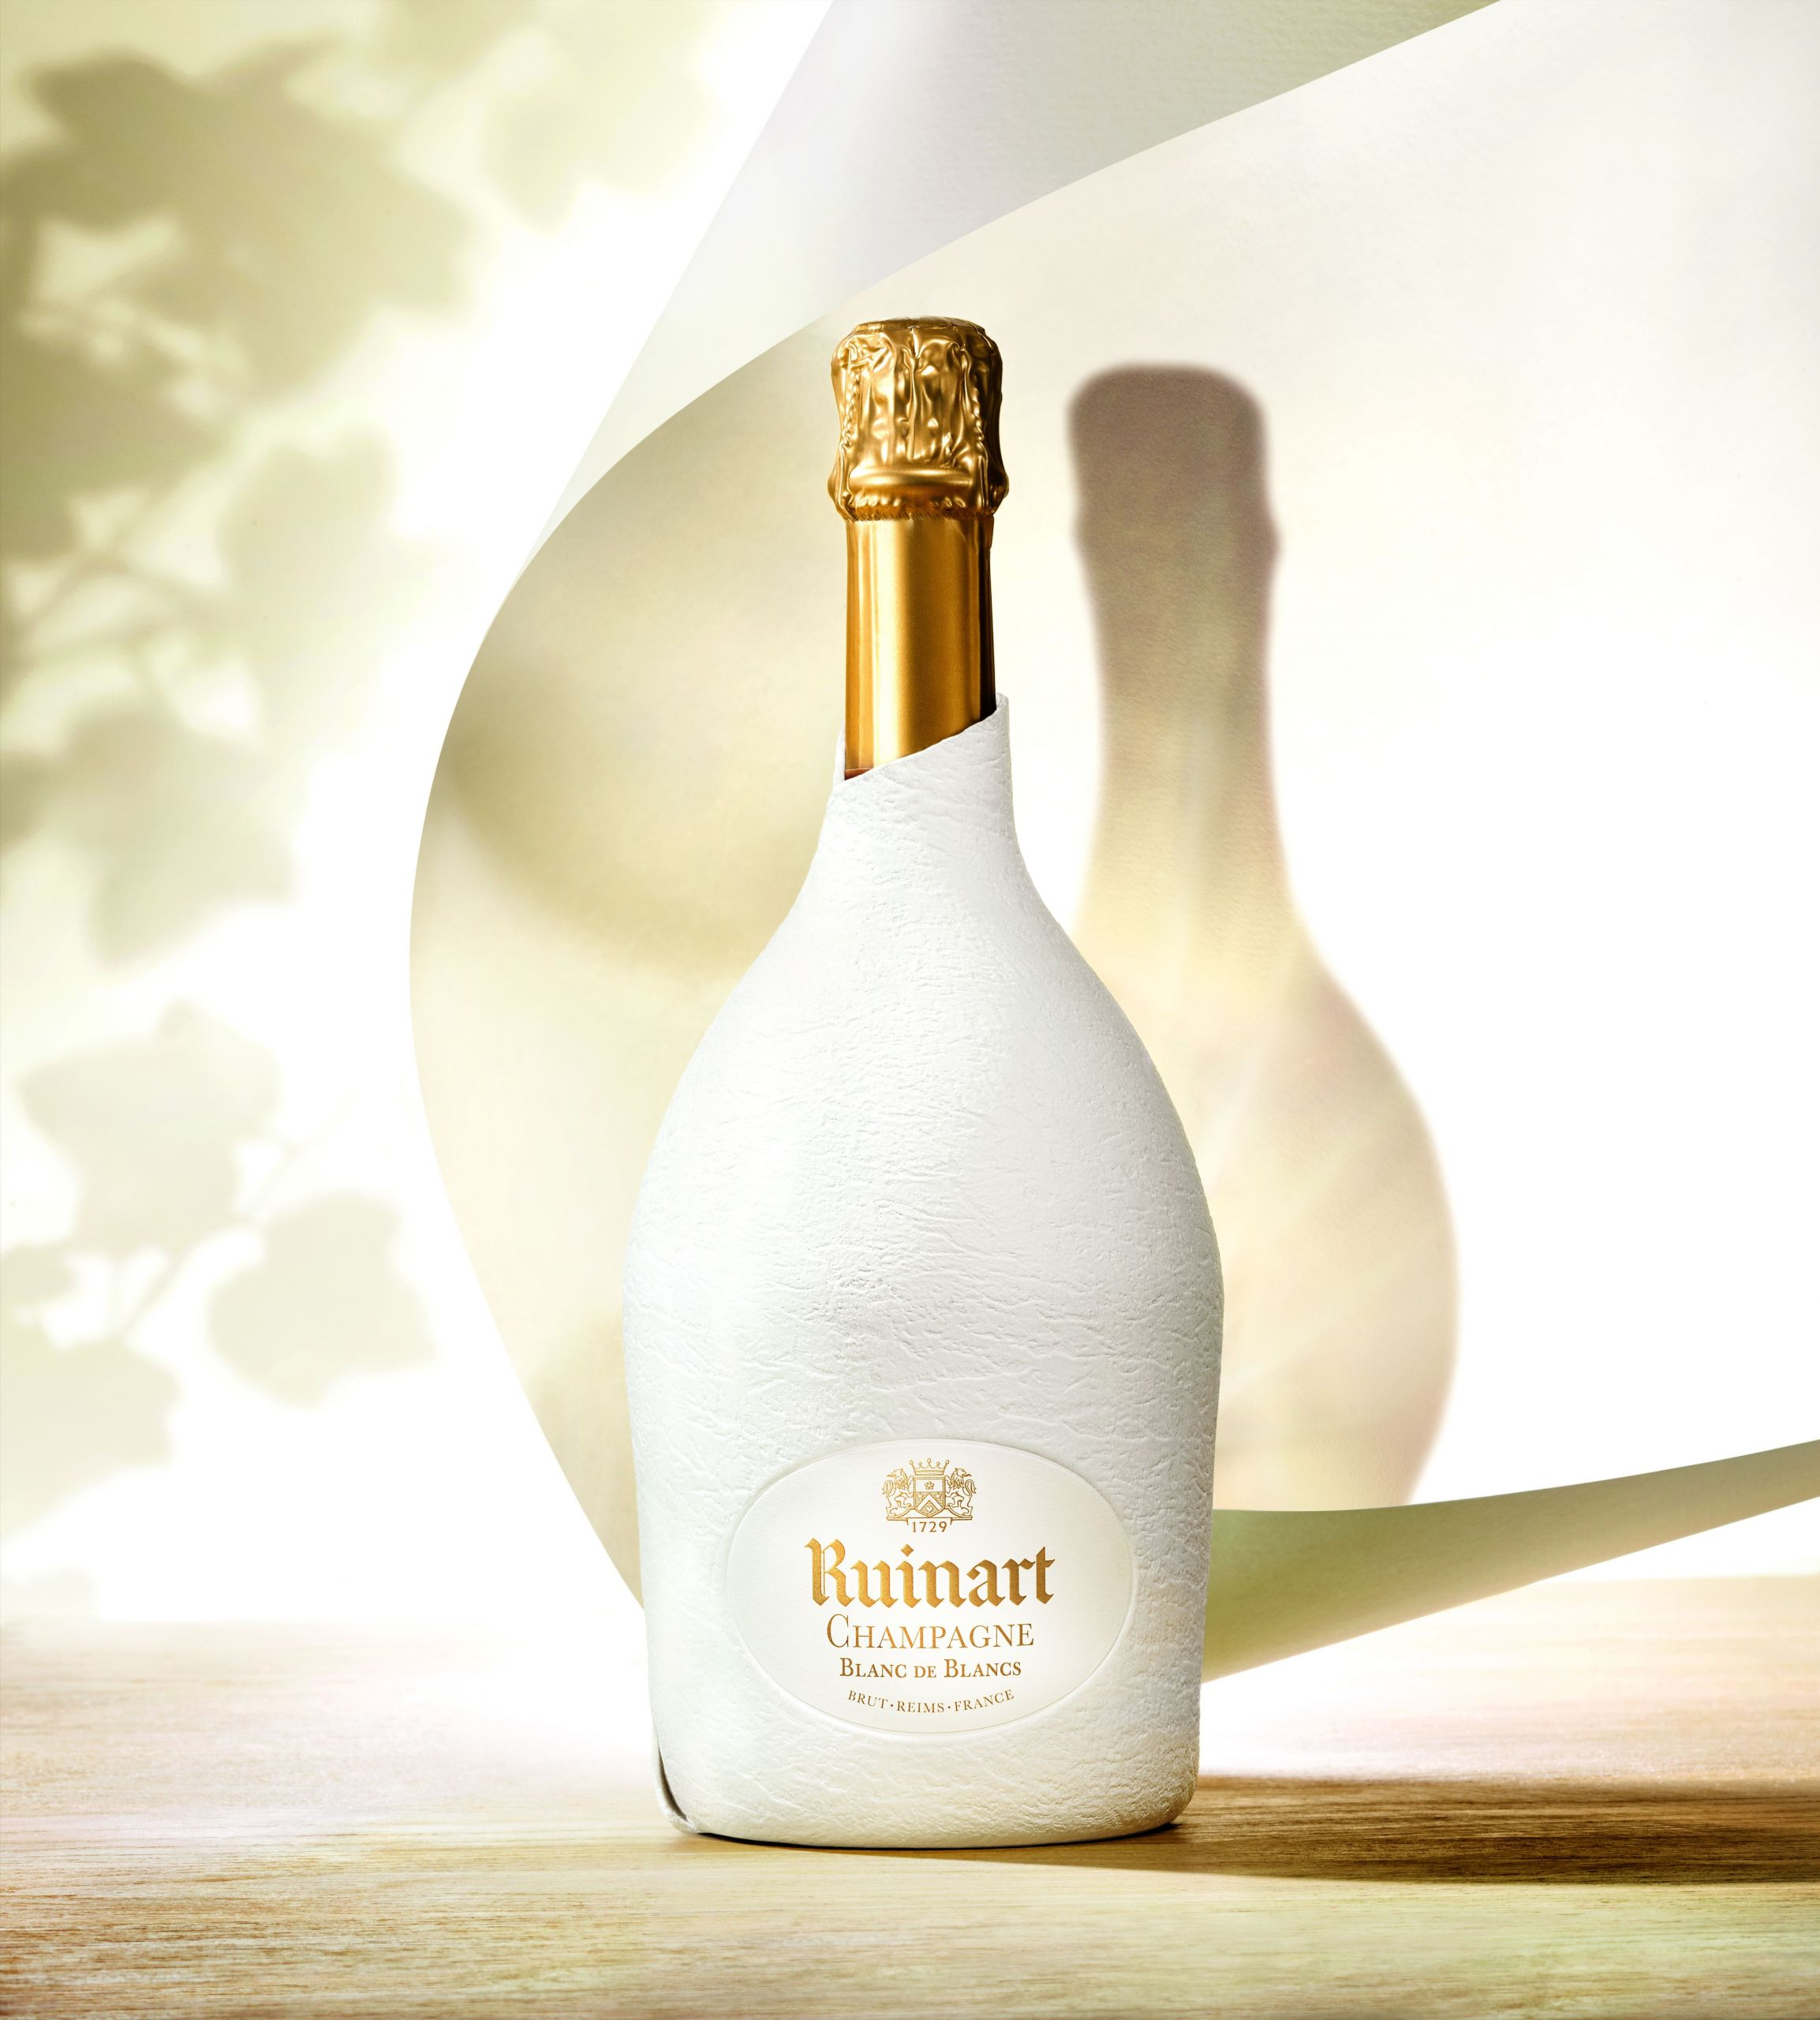 COLOURFORM and Maison Ruinart box clever for the champagne market